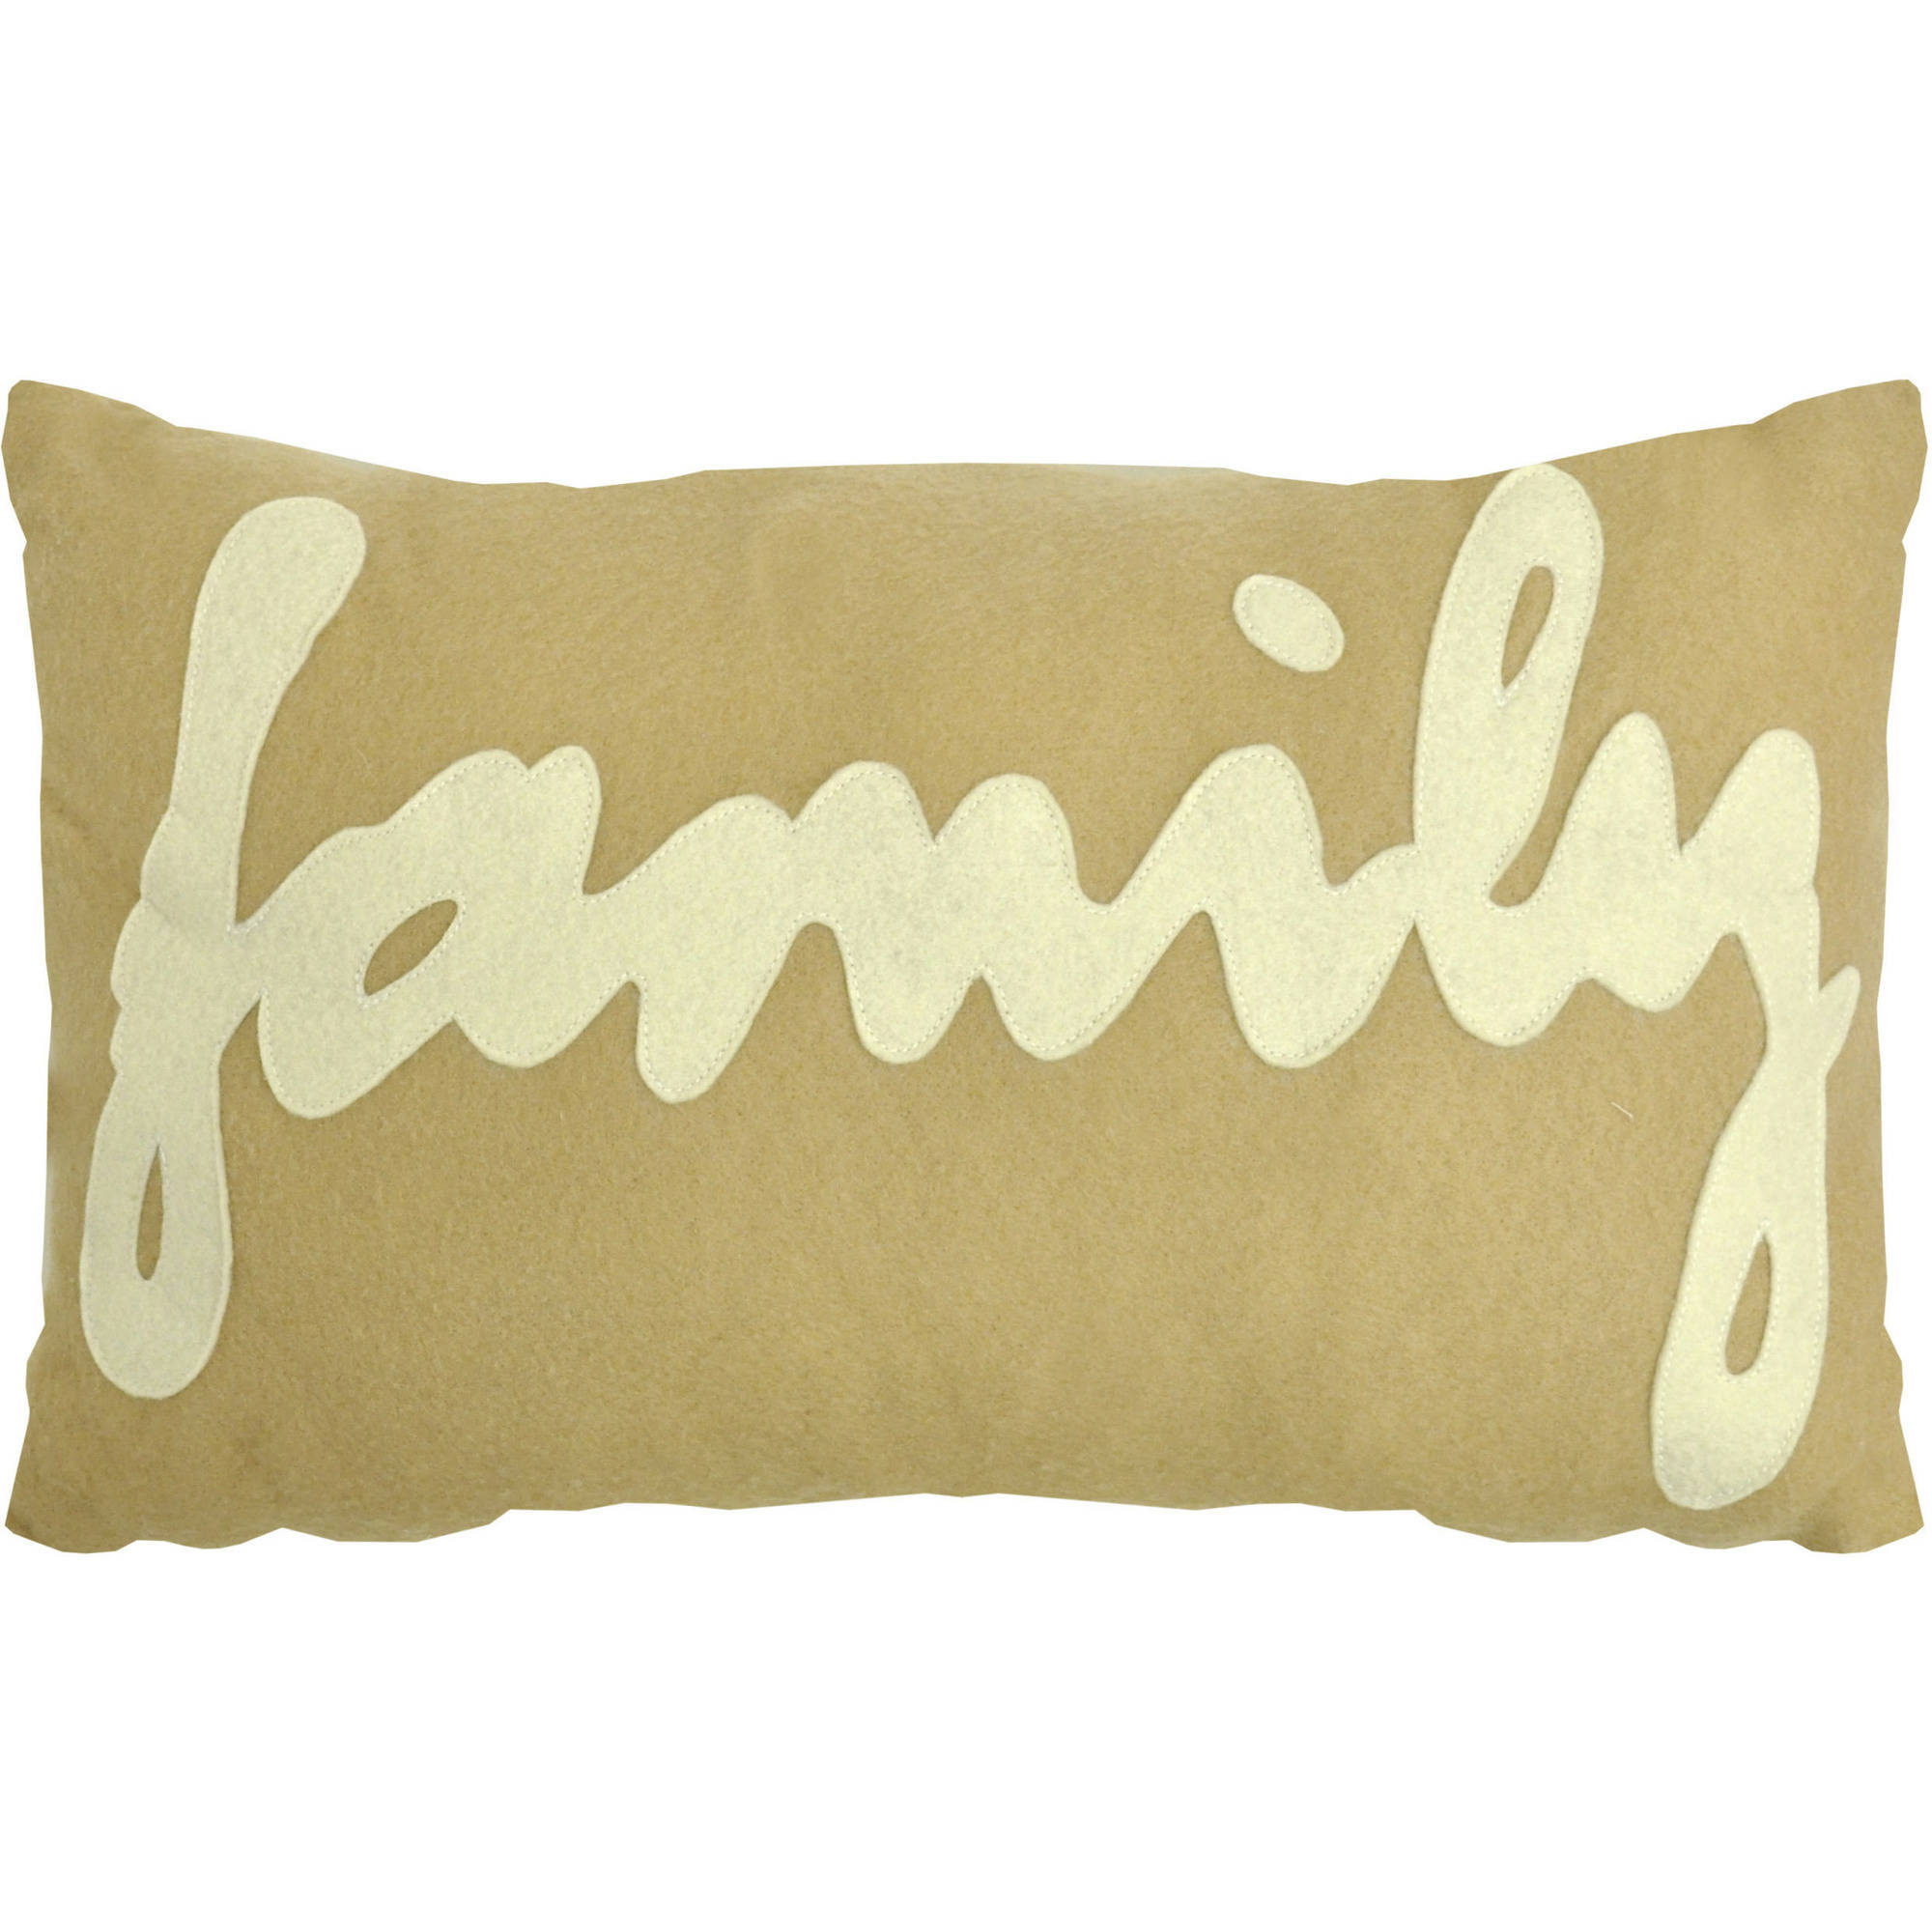 Urban Shop Felt Family Word Decorative Pillow, Taupe with White